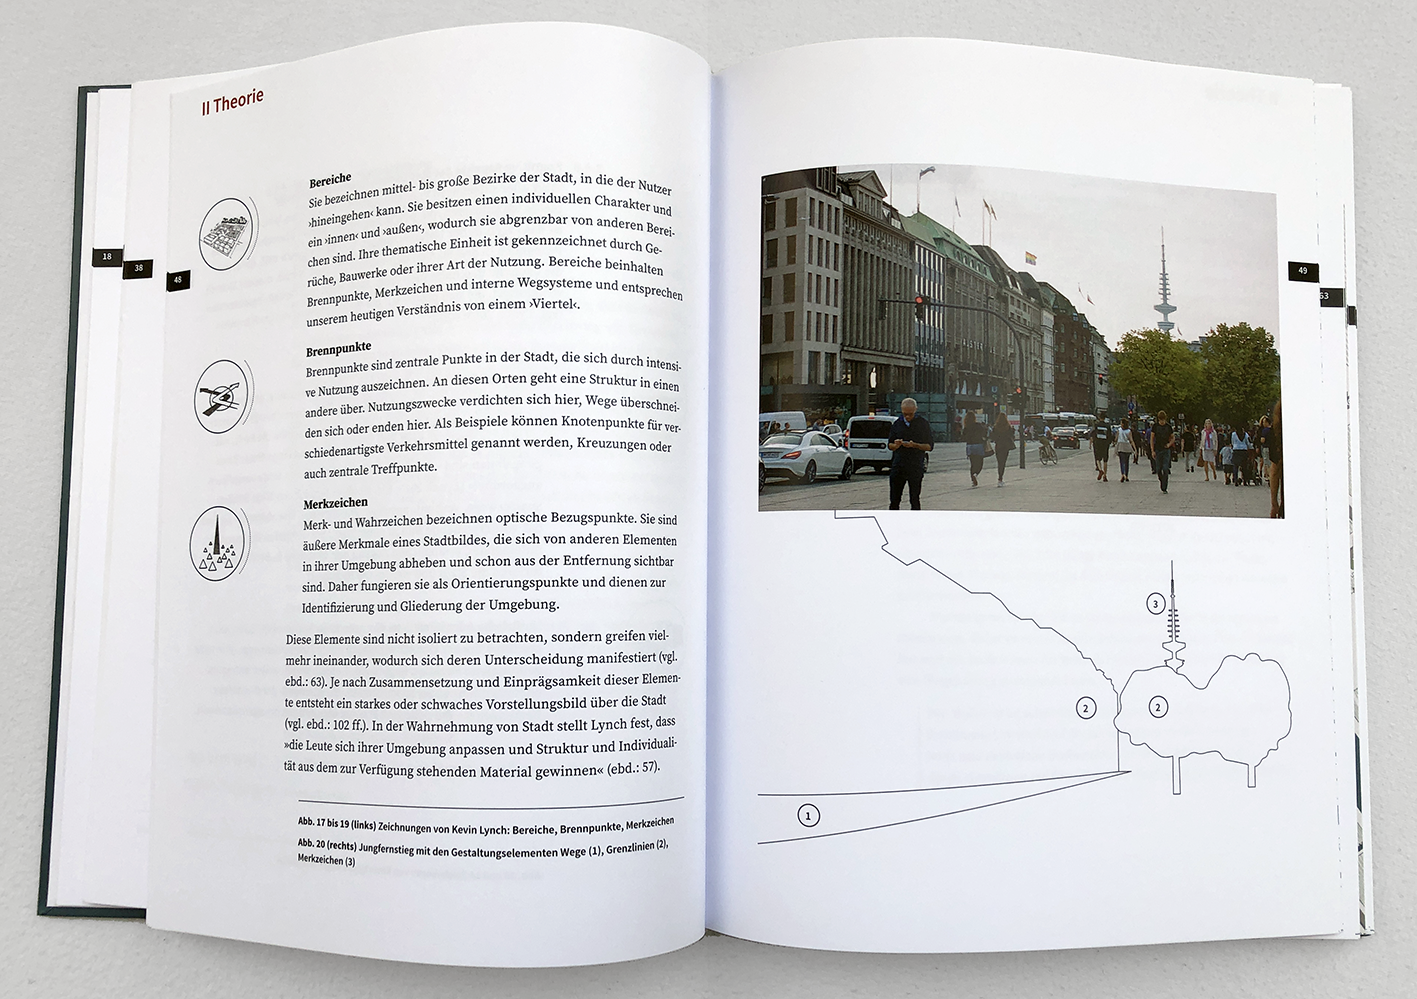 Extract from my Master thesis on different wayfinding systems within Hamburg.